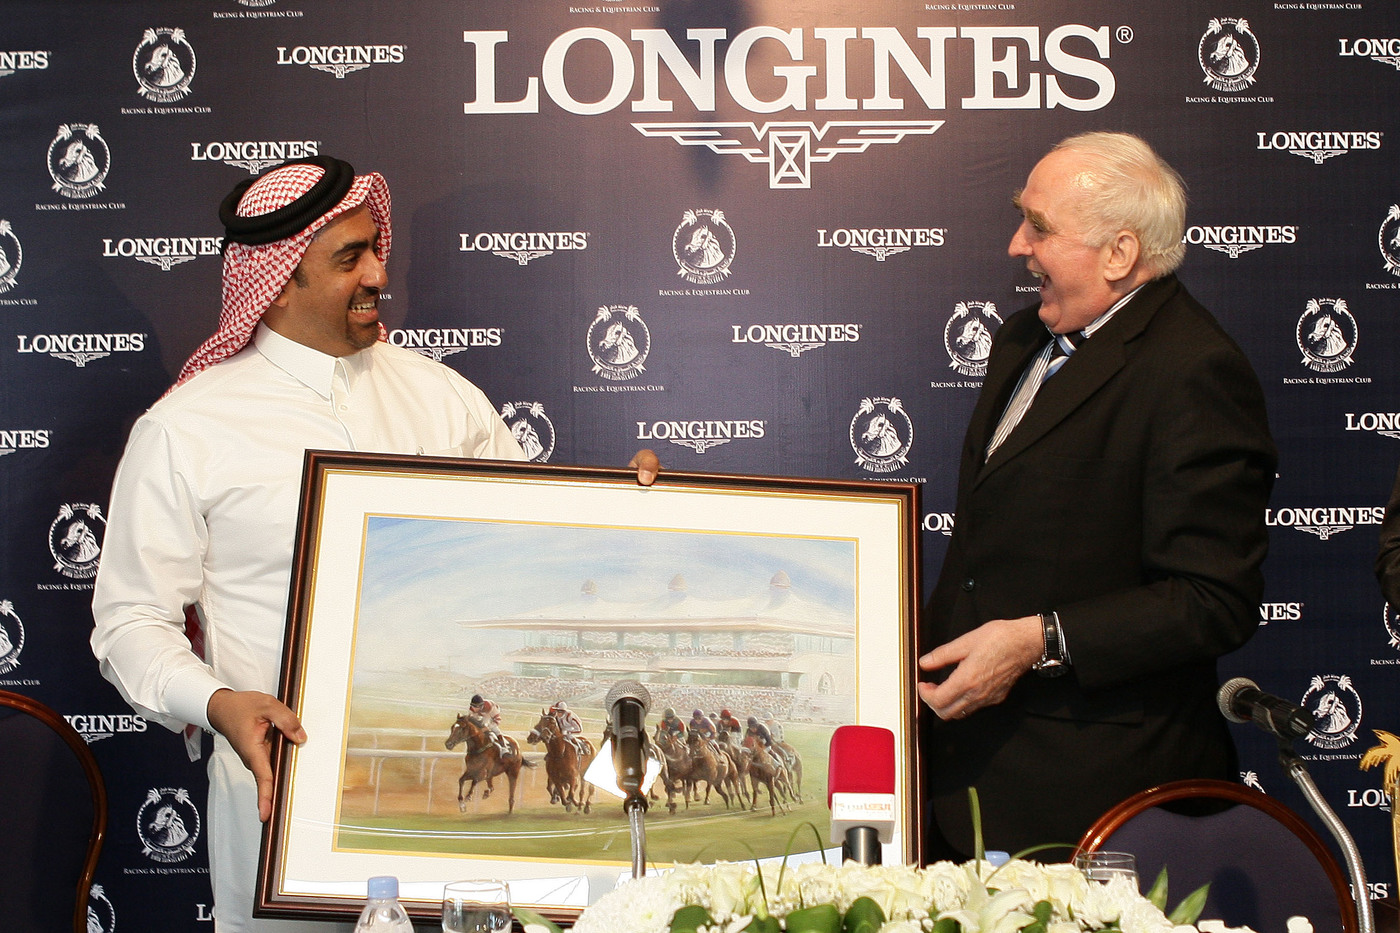 Longines Flat Racing Event: Longines spreads its elegance throughout the equestrian world: A new partnership with the distinguished Qatar Racing and Equestrian club 2